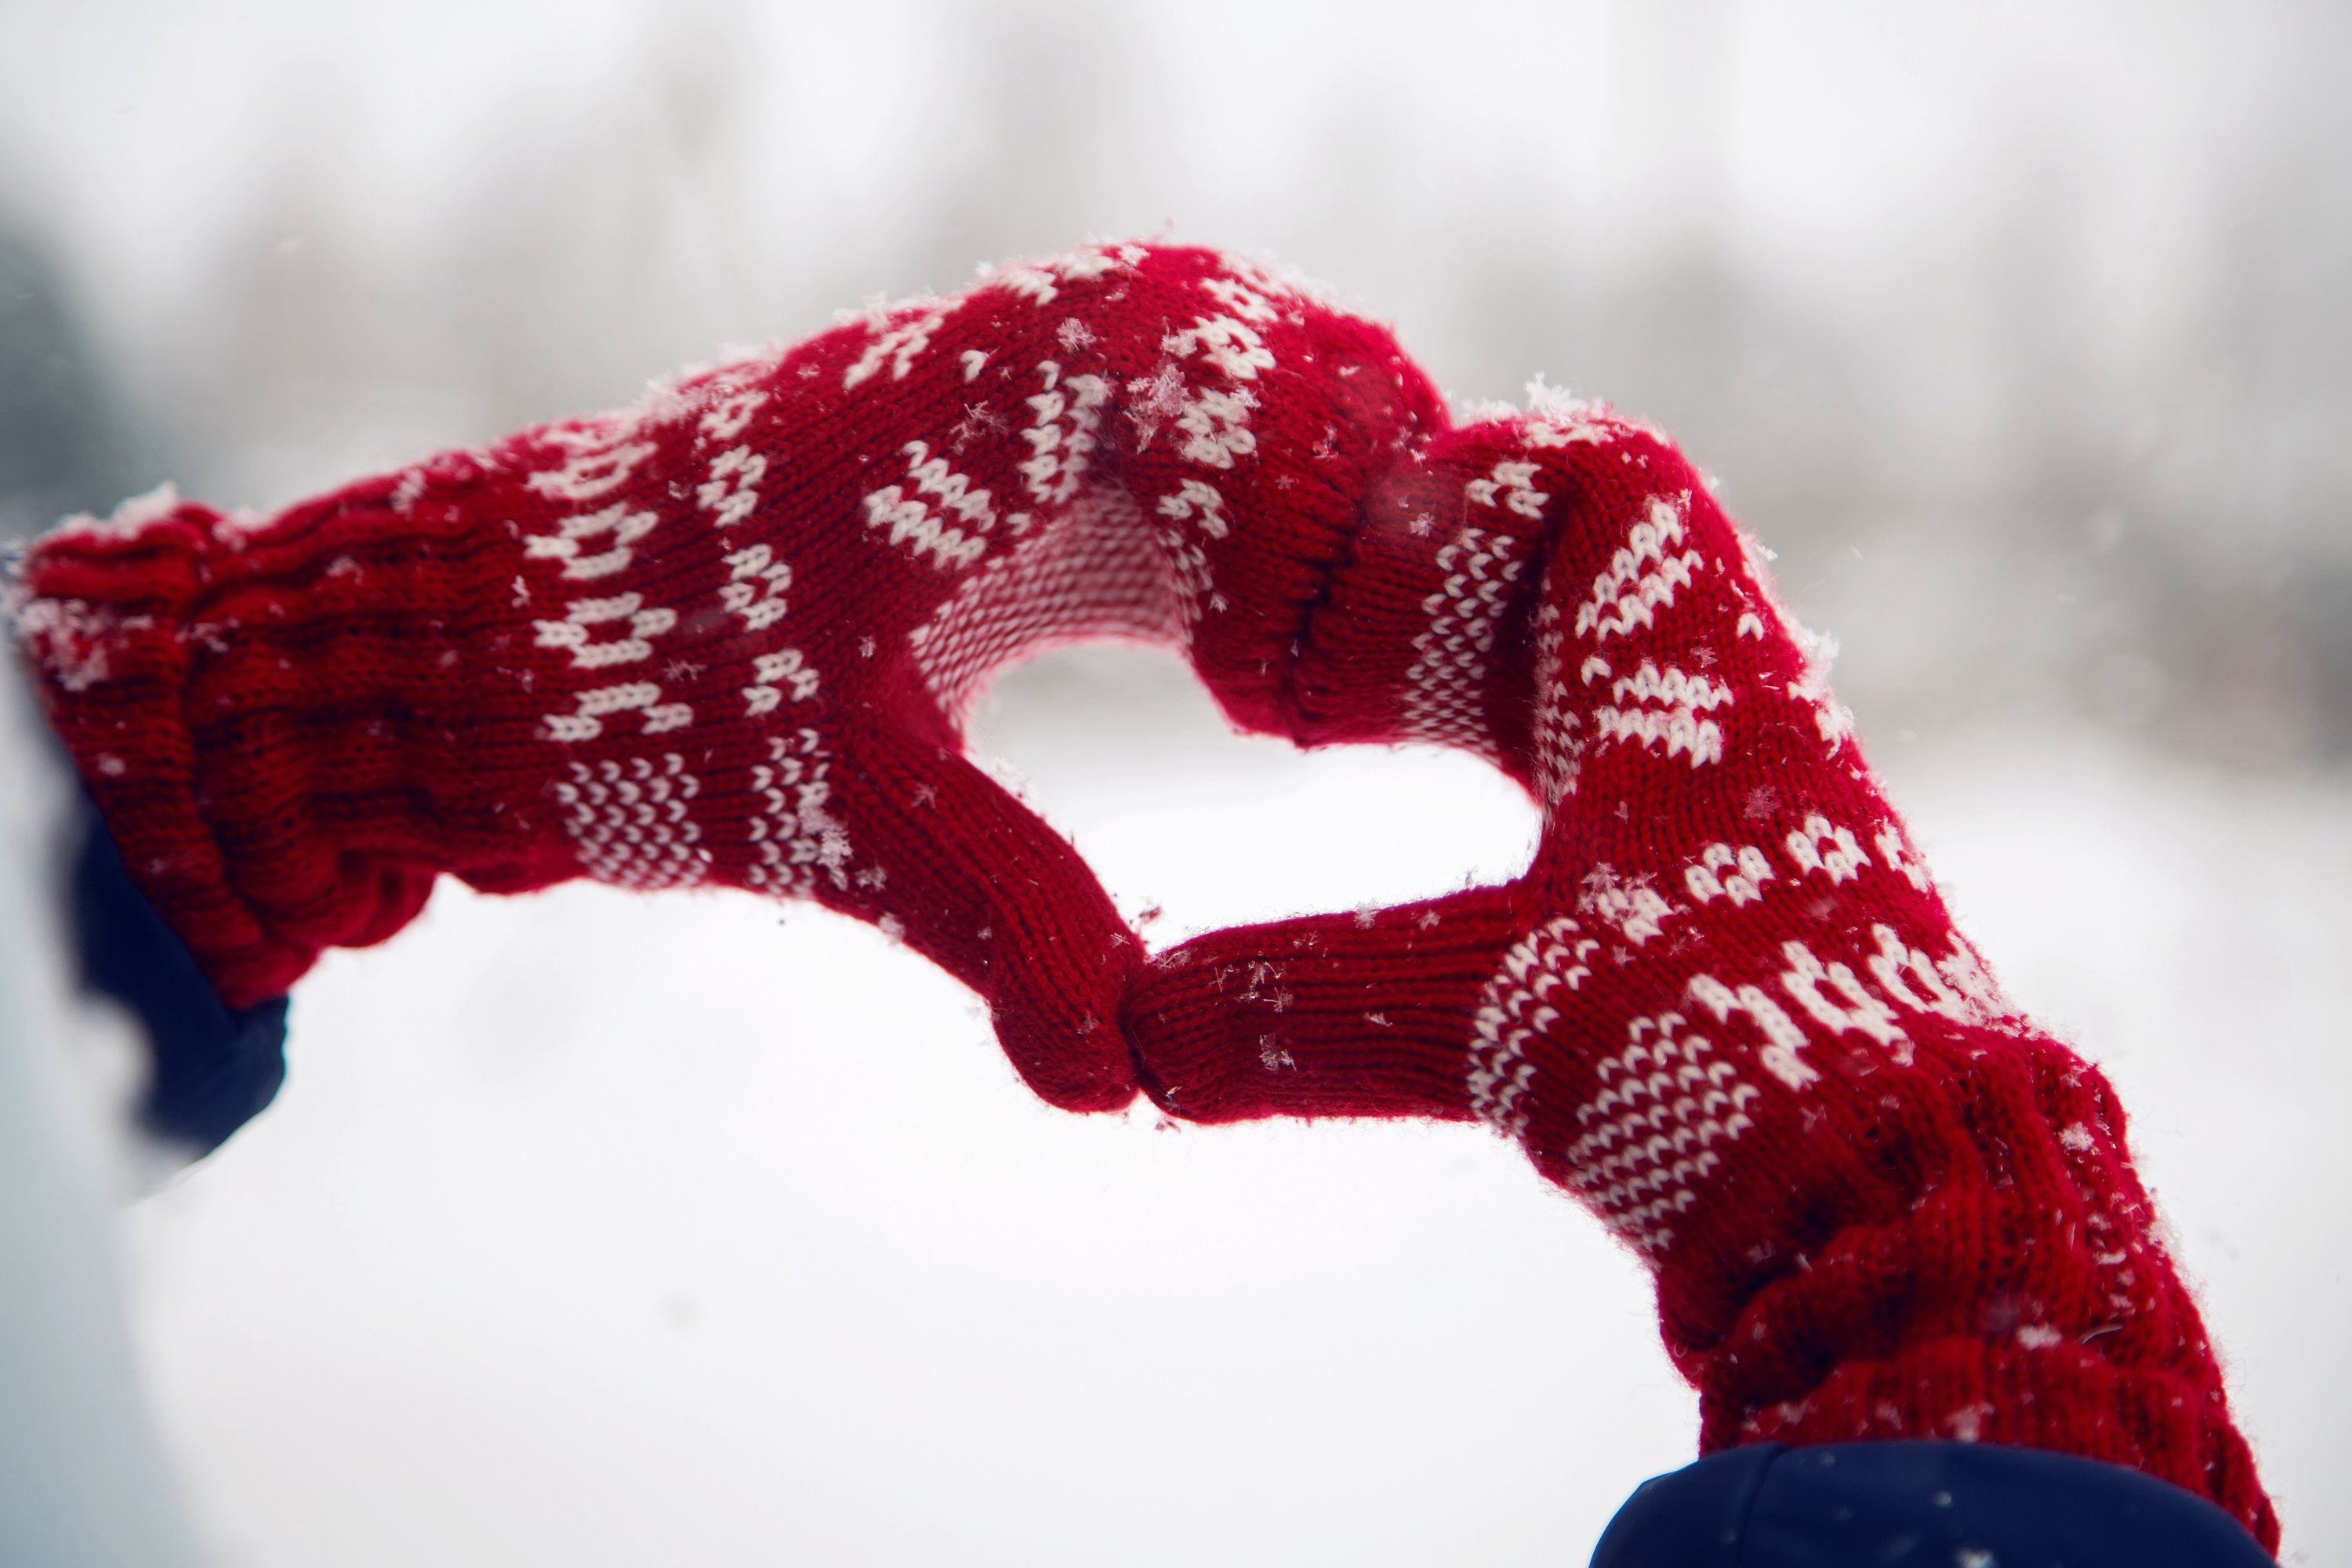 There's nothing better than a good pair of sweater mittens in the winter. Follow my step by step tutorial to make your own and stay warm this winter.